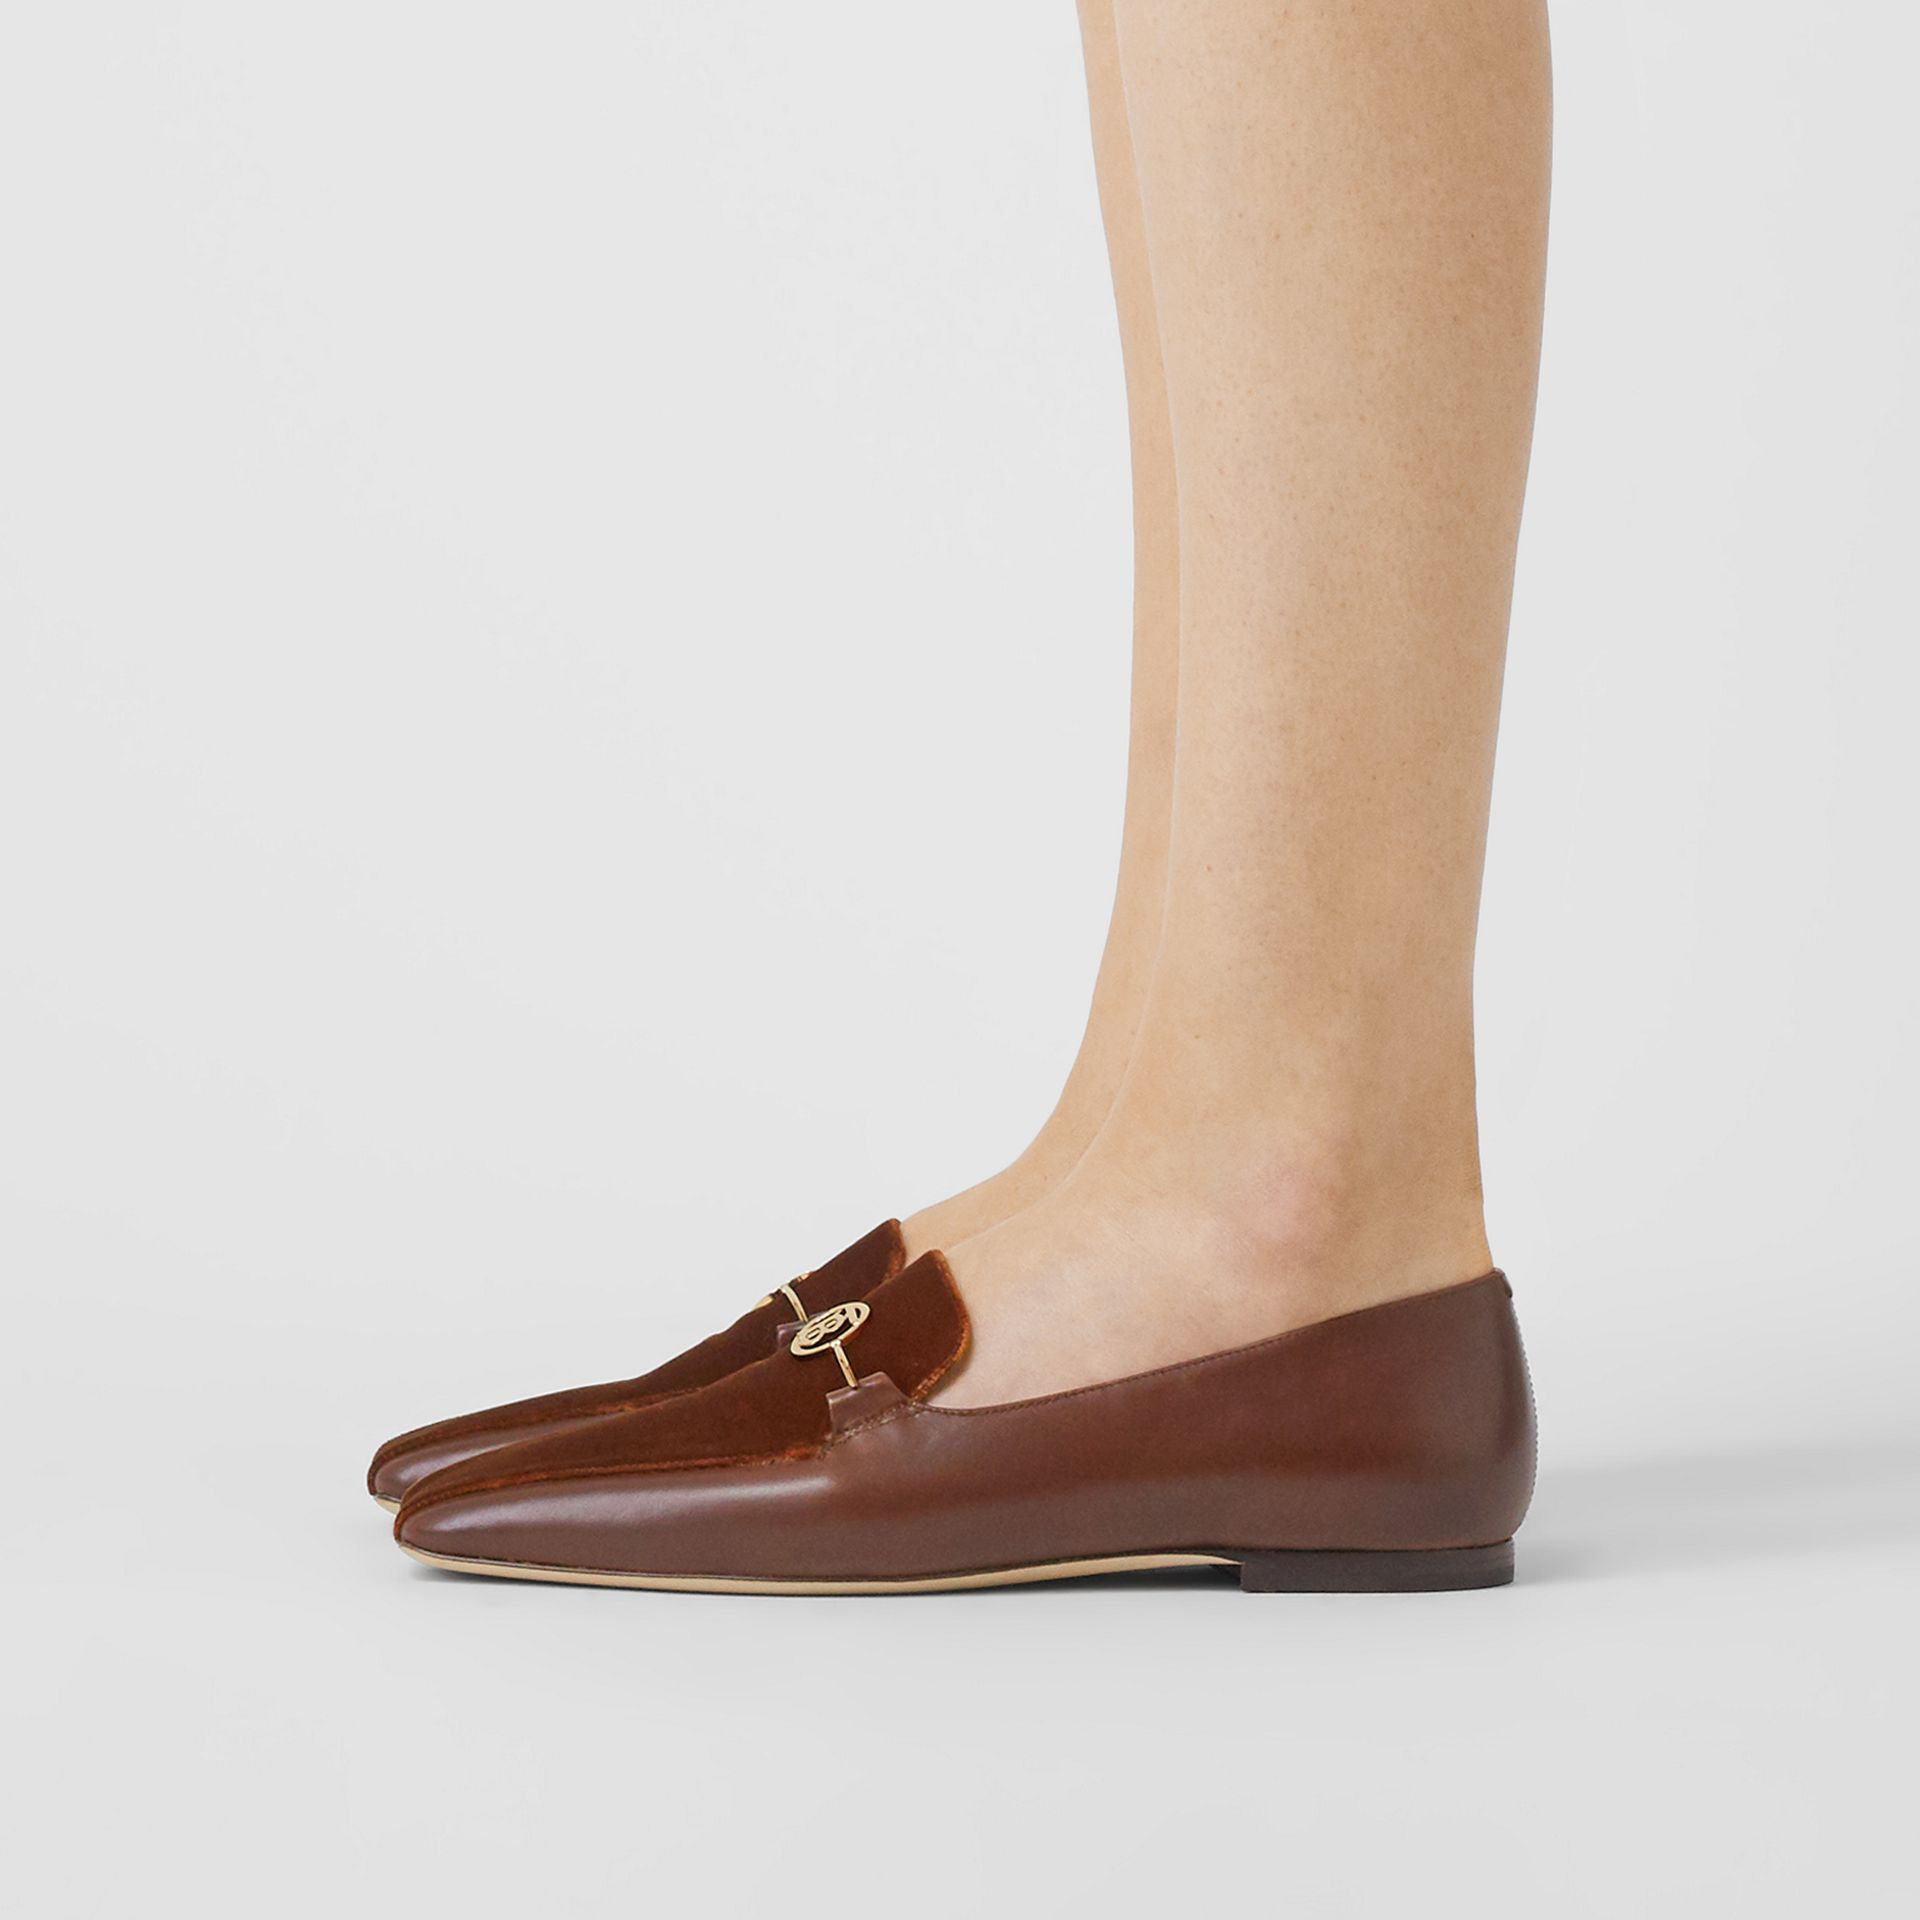 Monogram Motif Velvet and Leather Loafers in Dark Chocolate/tan - Women | Burberry United Kingdom - gallery image 2